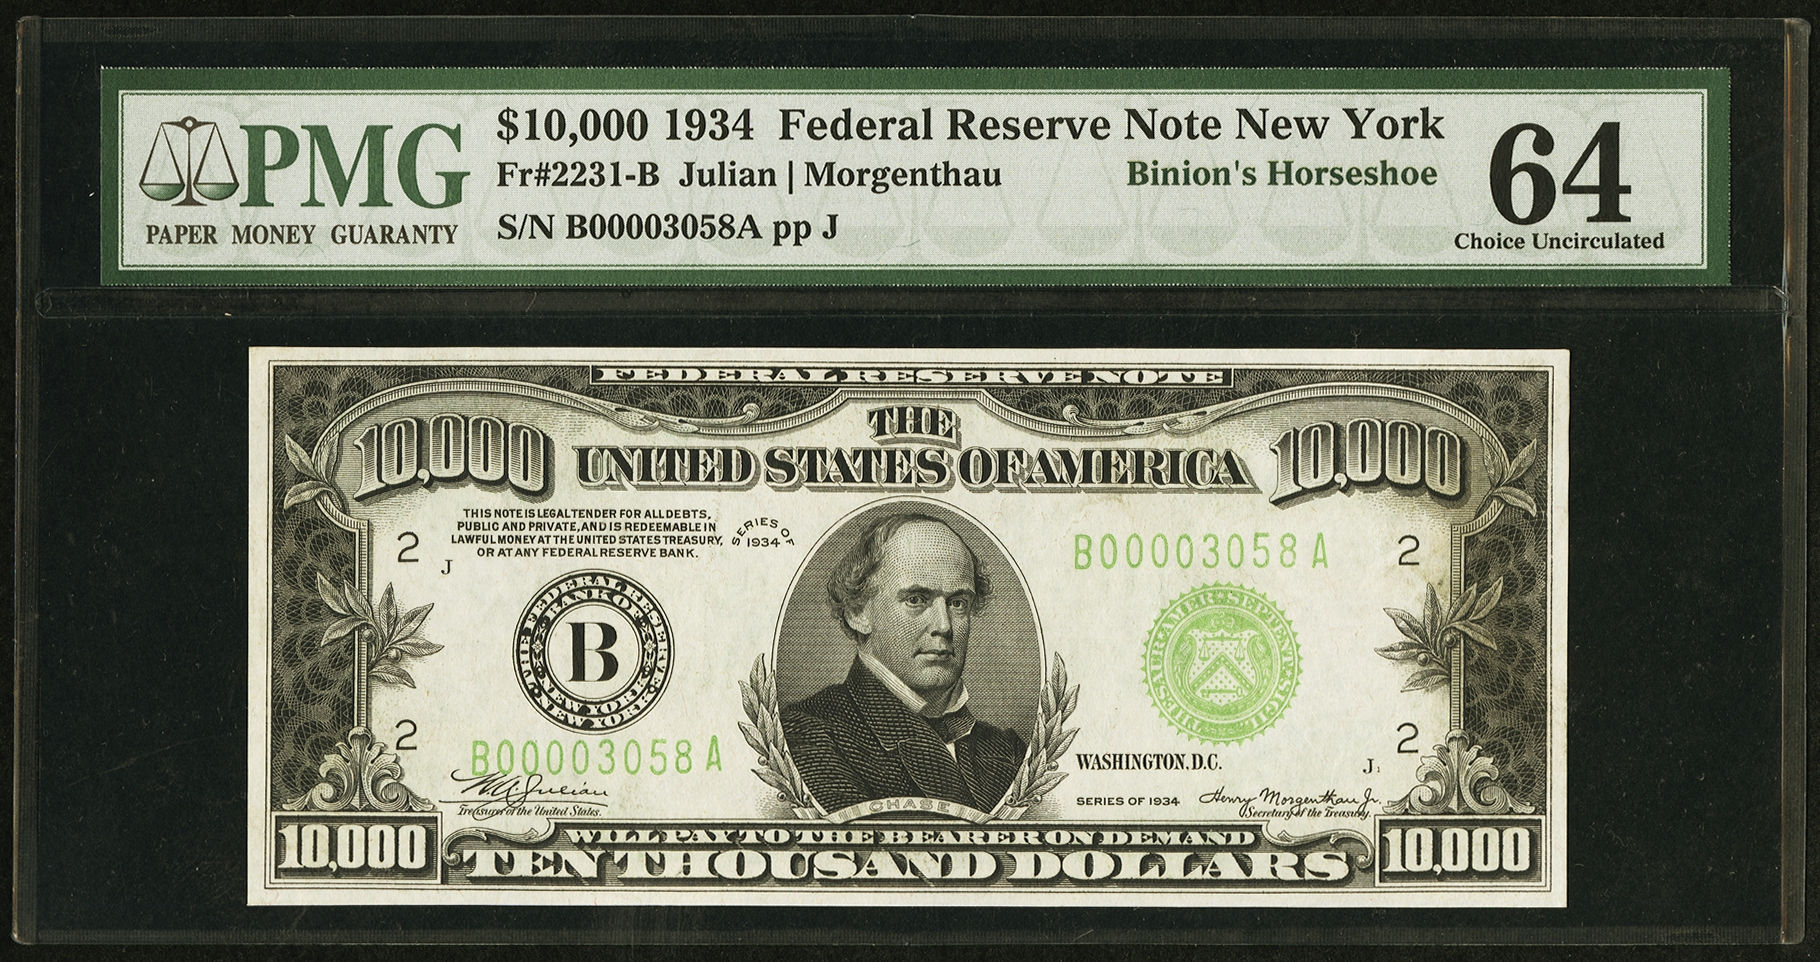 1934-10000-dollar-federal-reserve-note-ny-ha-face